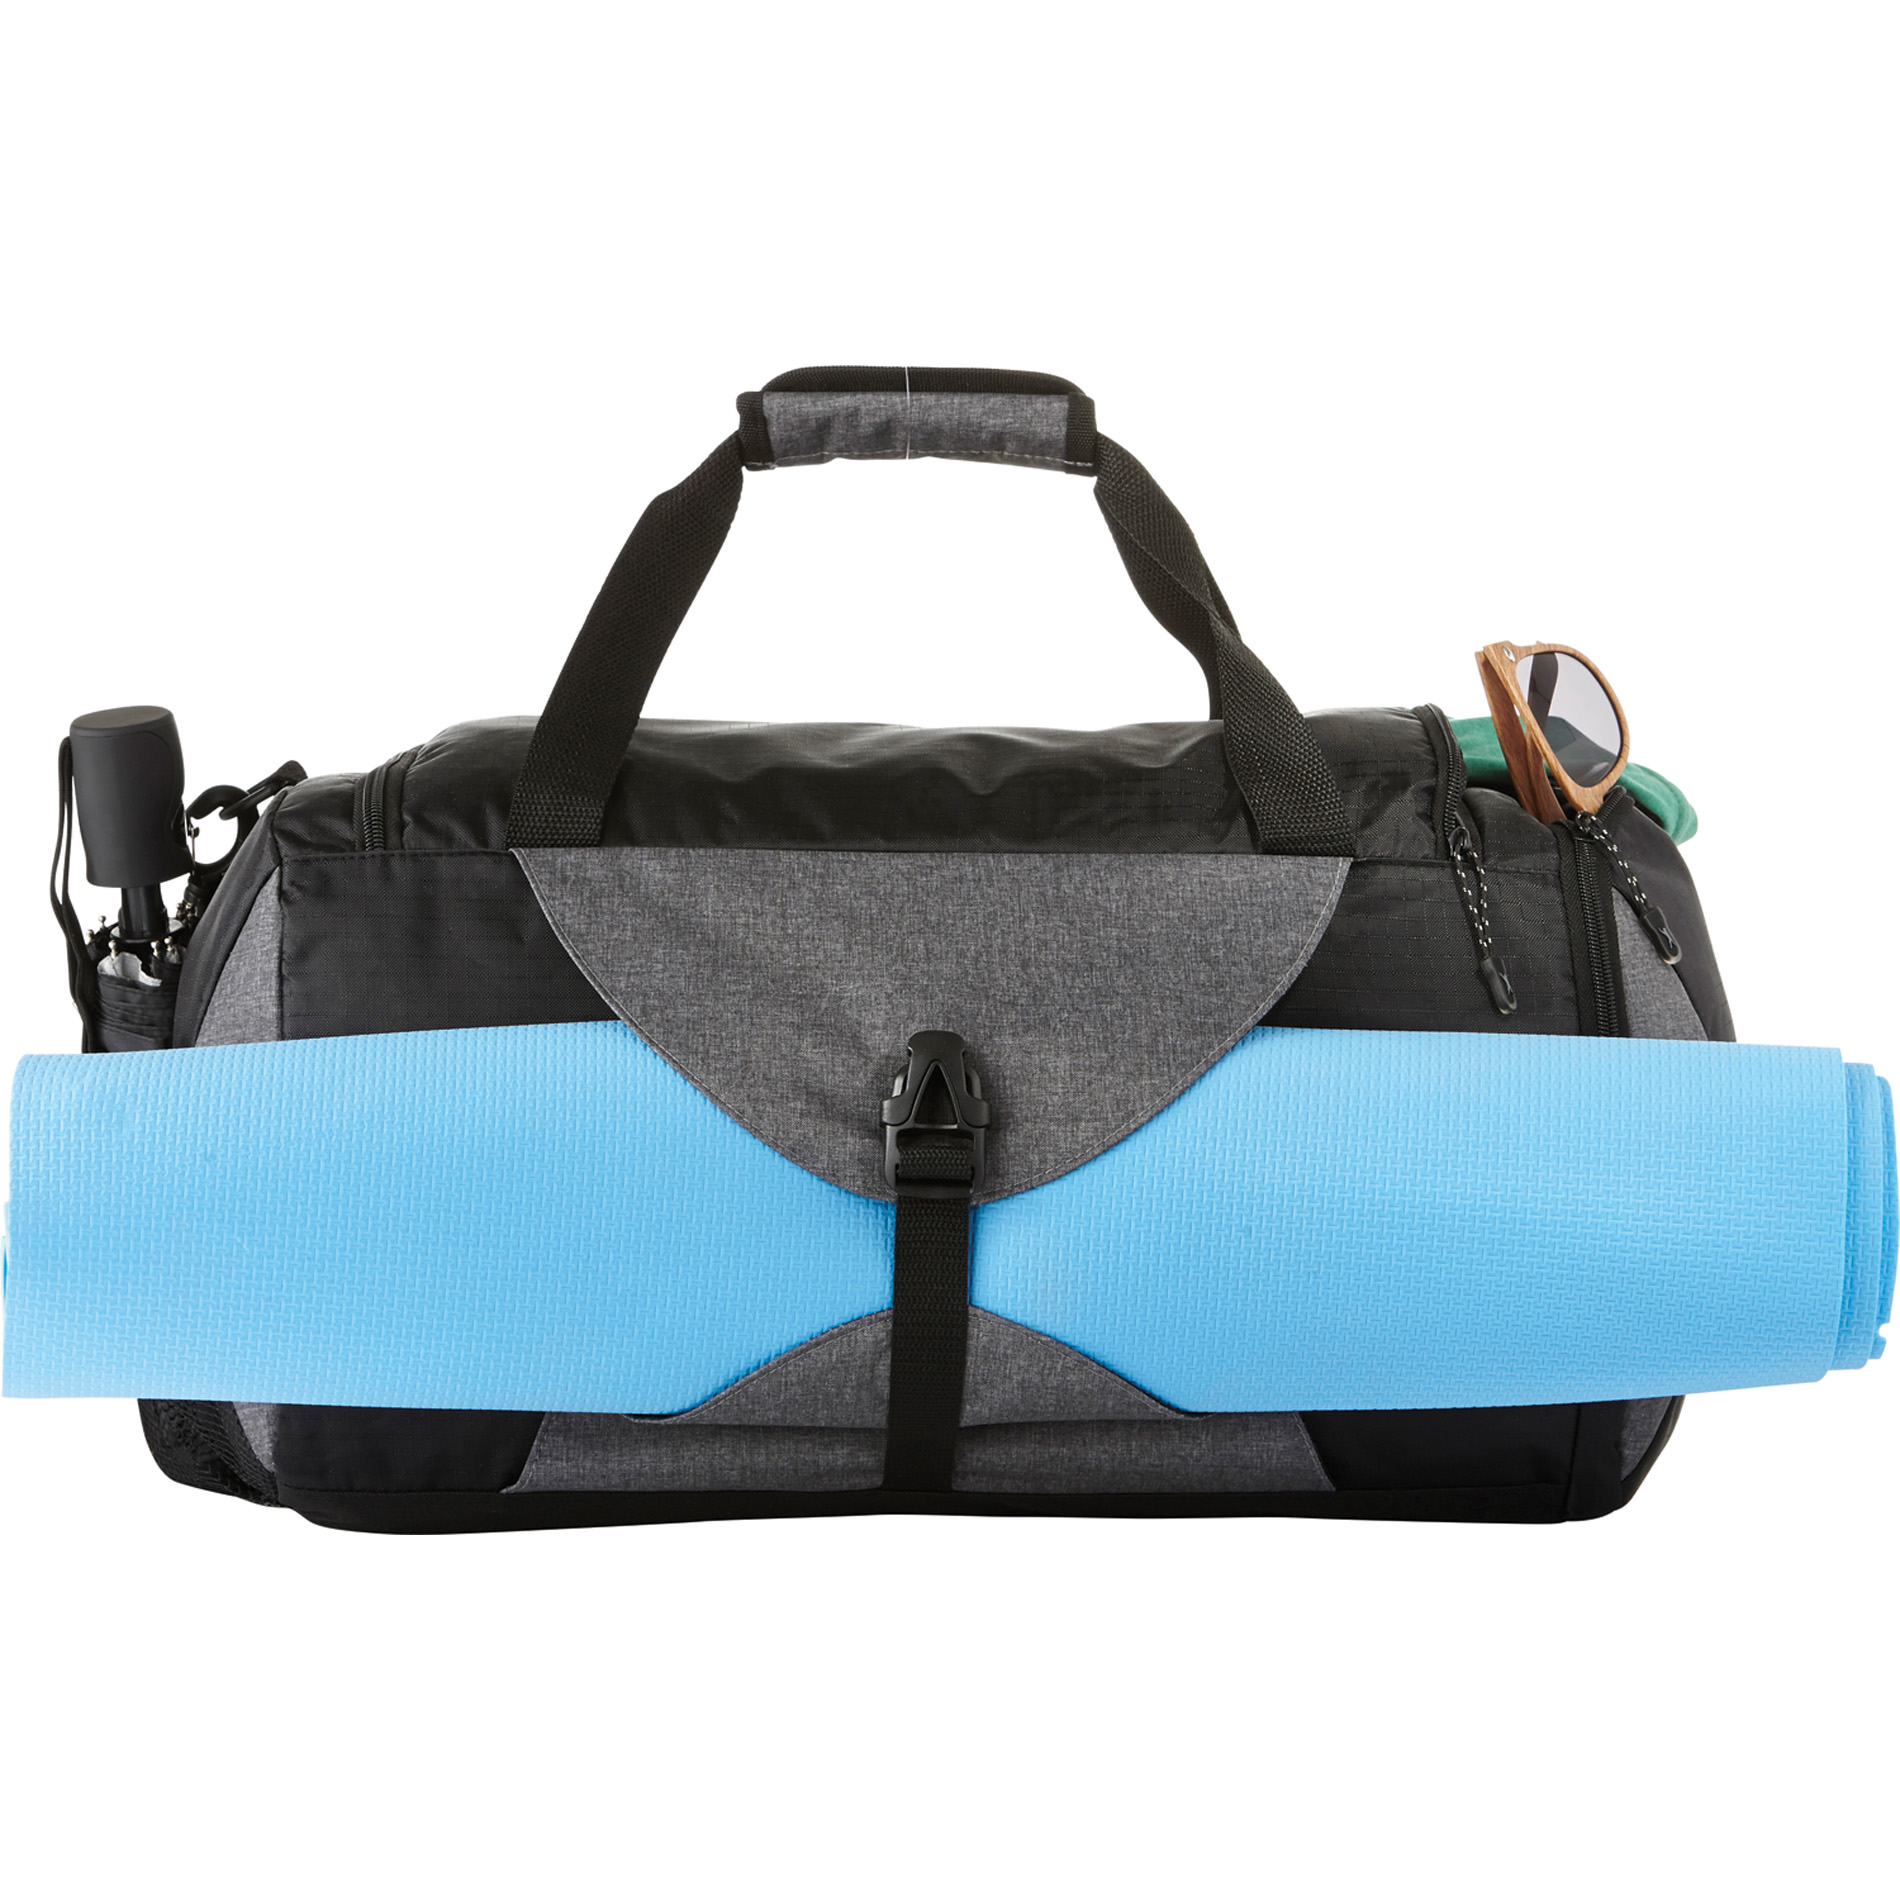 "Slazenger 6050-85 - 20"" Gym Yoga Duffel Bag"